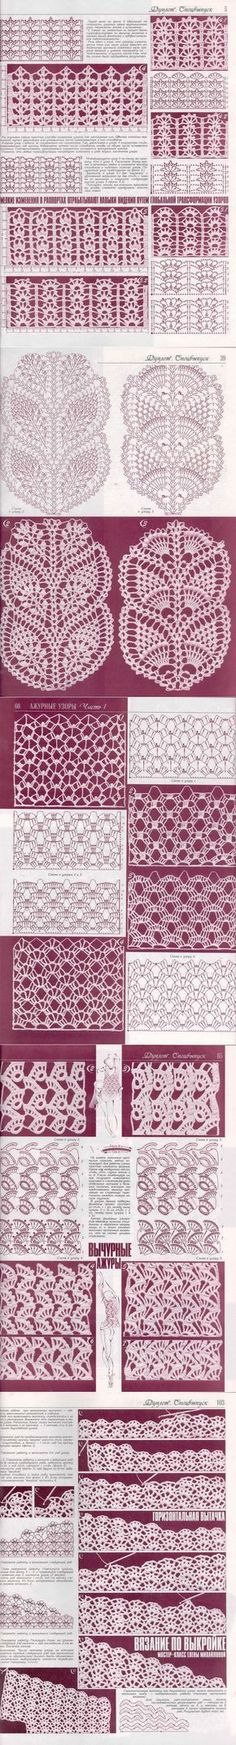 Knitting and Crochet Patterns for your designs. They will help you with crochet scheme. Crochet Stitches Chart, Crochet Motifs, Crochet Borders, Crochet Diagram, Thread Crochet, Filet Crochet, Knitting Stitches, Crochet Doilies, Knit Crochet